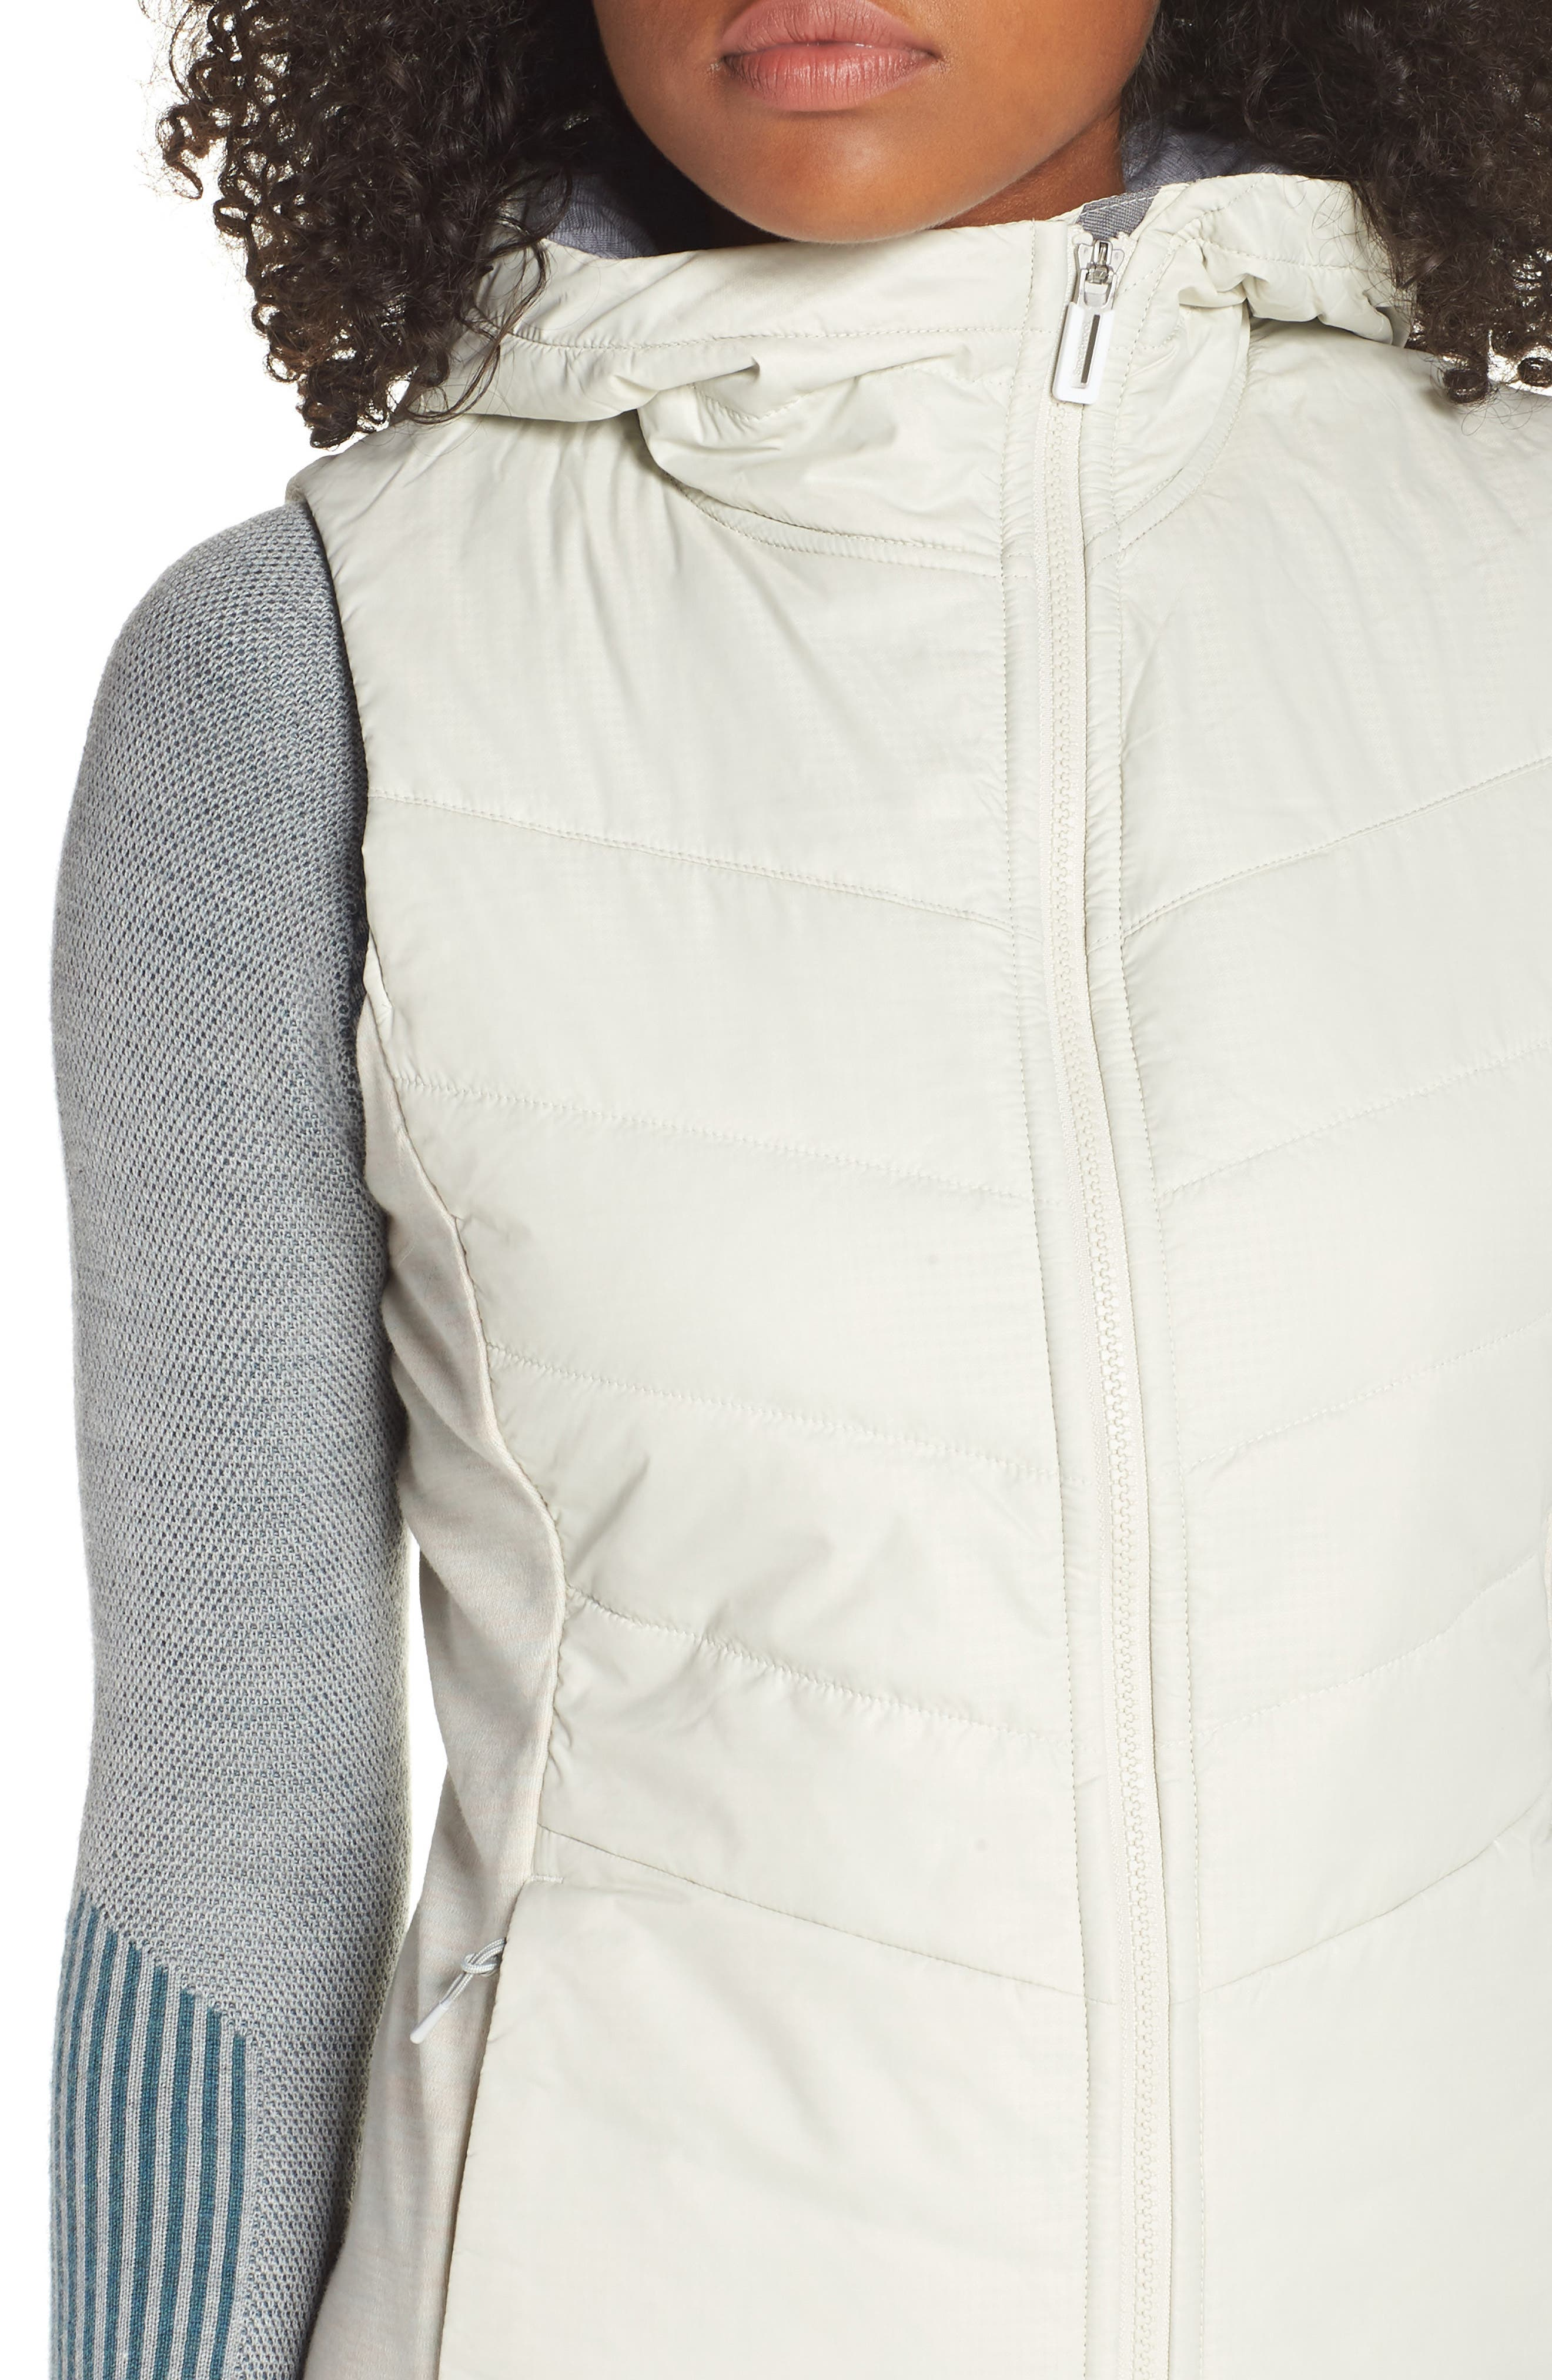 Smartloft 60 Insulated Hooded Vest,                             Alternate thumbnail 4, color,                             SILVER BIRCH